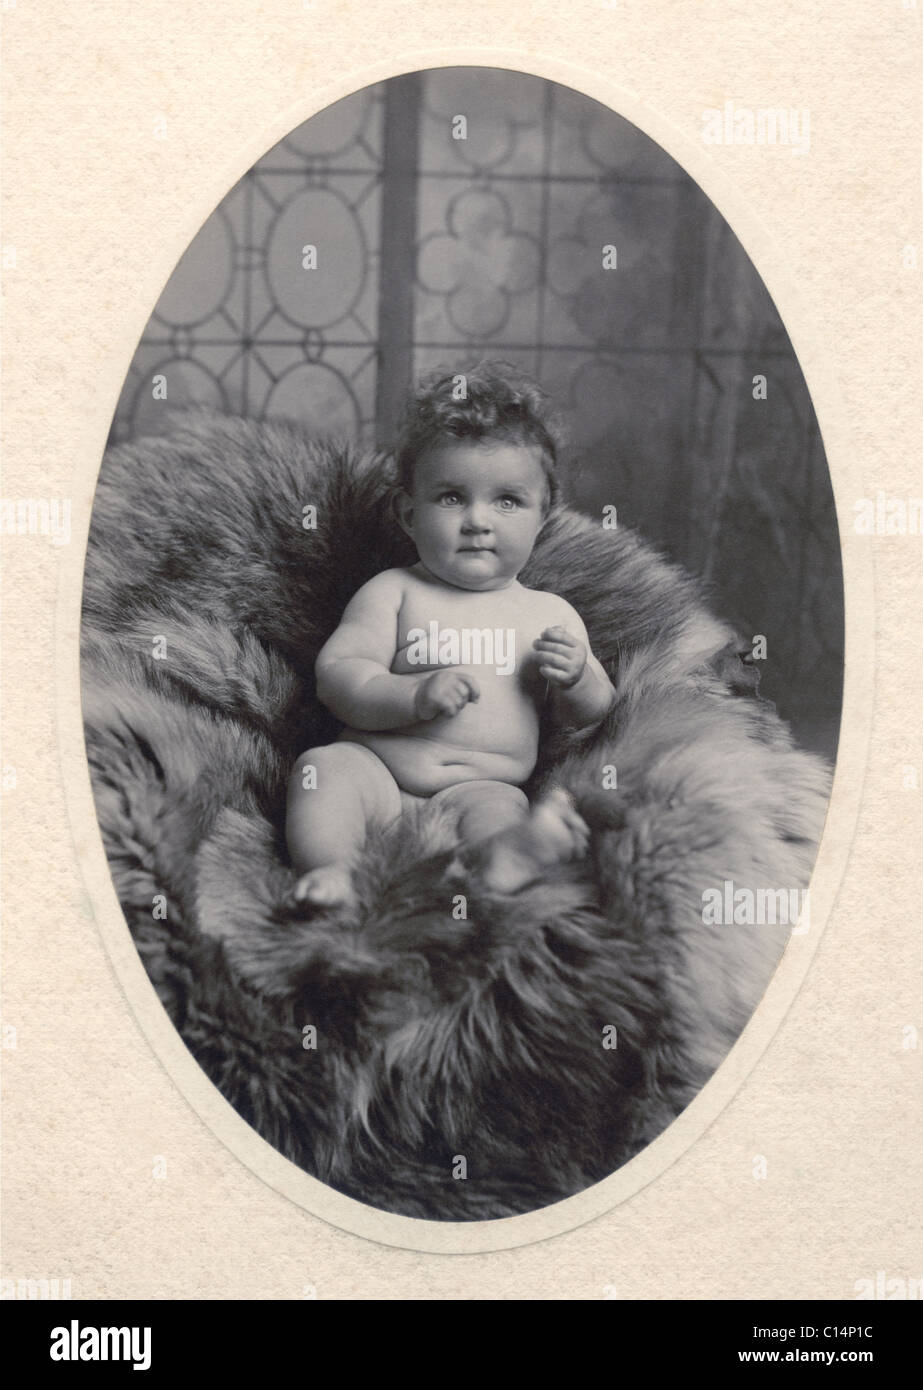 Edwardian or Victorian studio portrait of cute, chubby attractive adorable cherub-like baby with curly hair, lying - Stock Image